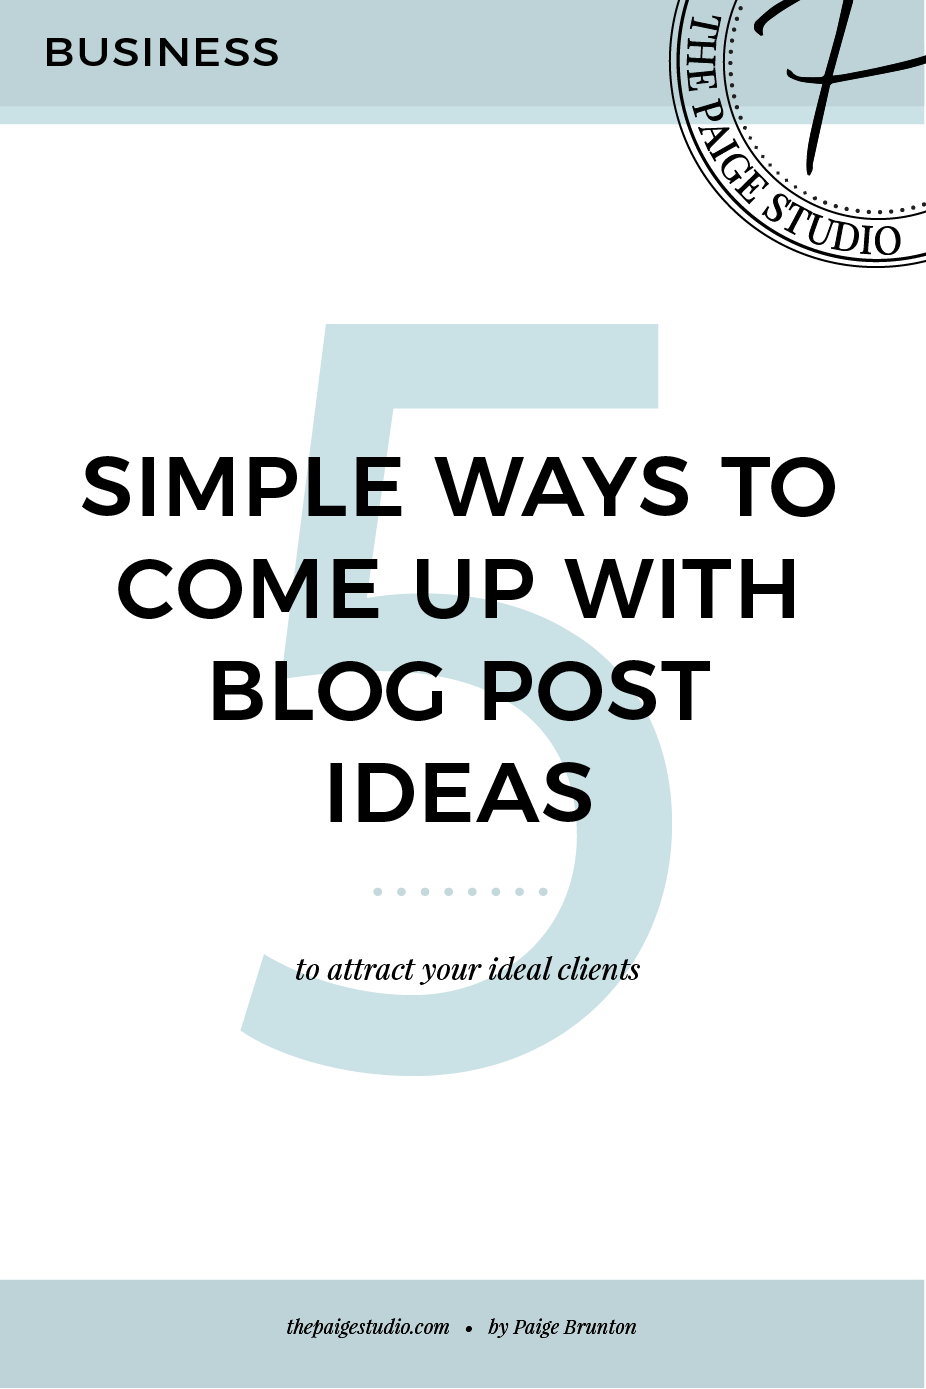 5 simple ways to come up with blog post ideas — The Paige